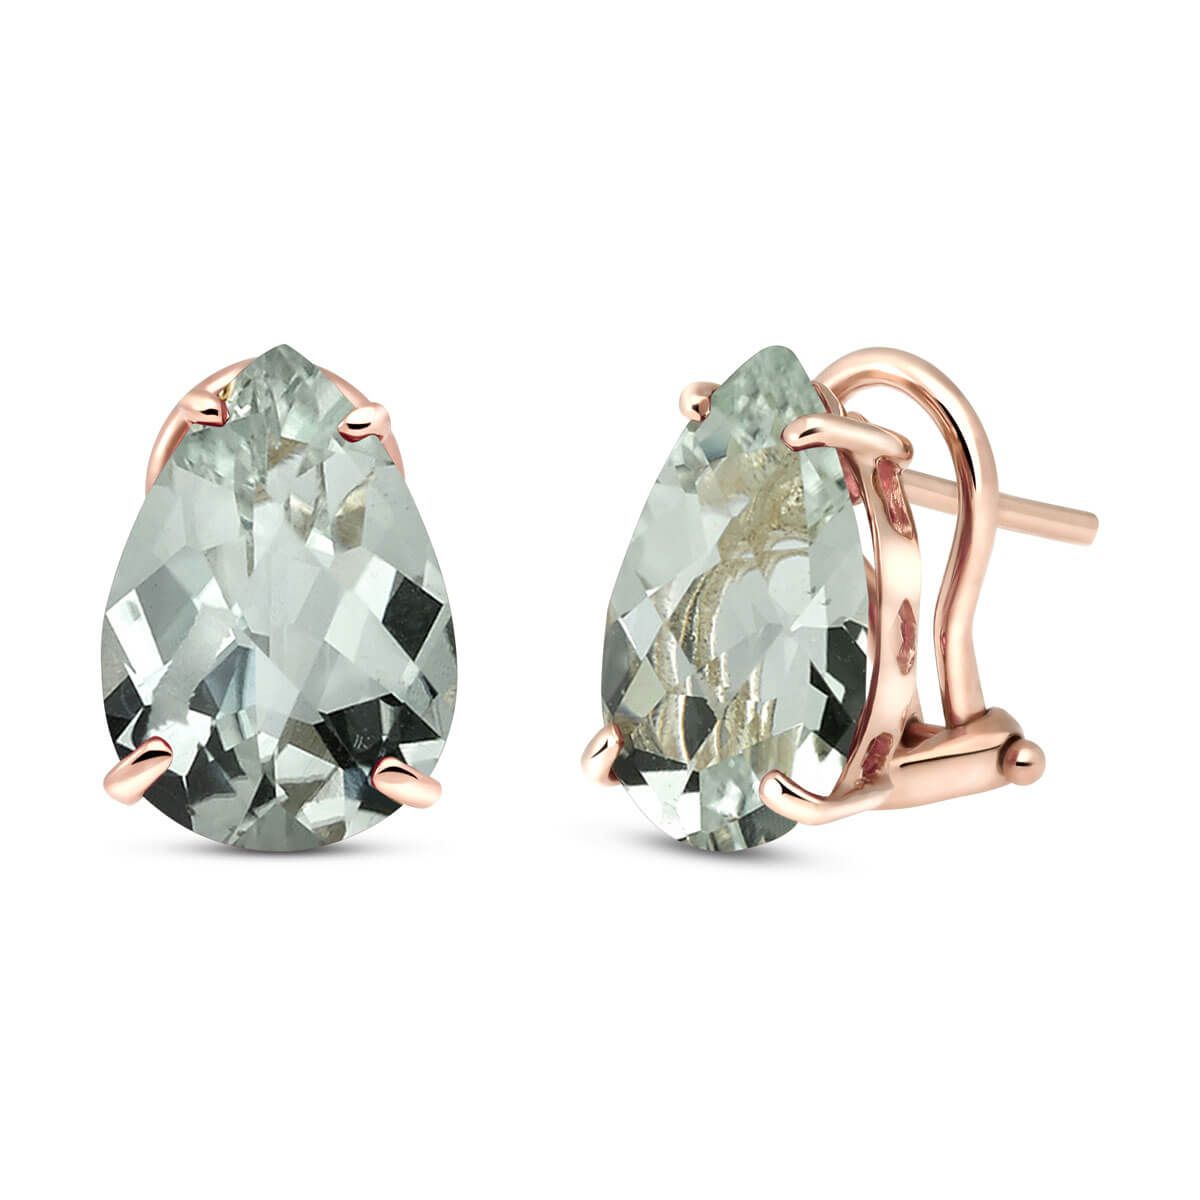 Green Amethyst Droplet Stud Earrings 10 ctw in 9ct Rose Gold